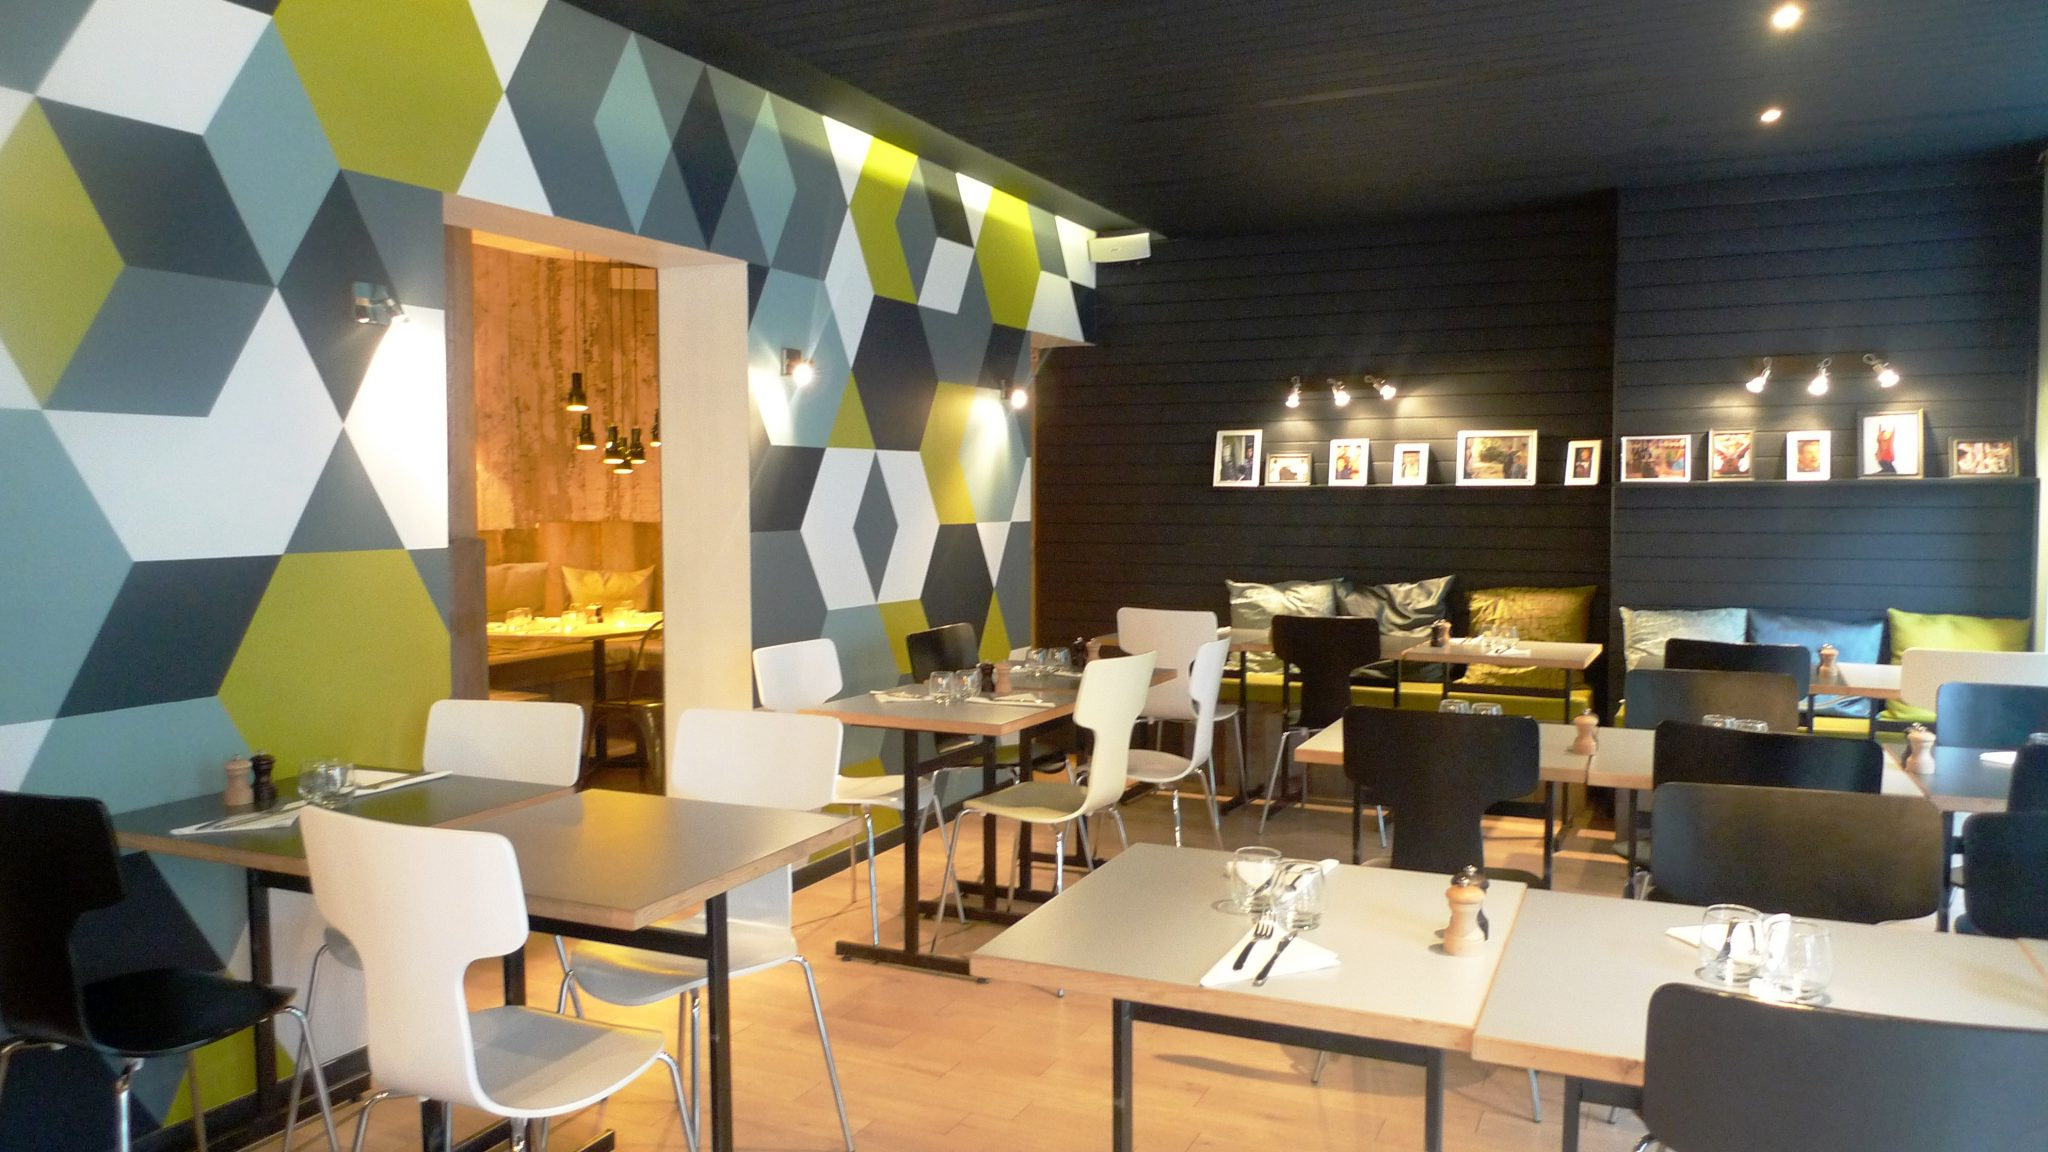 bruncher chez dewey bistrot moderne et gourmand mademoiselle bon plan. Black Bedroom Furniture Sets. Home Design Ideas